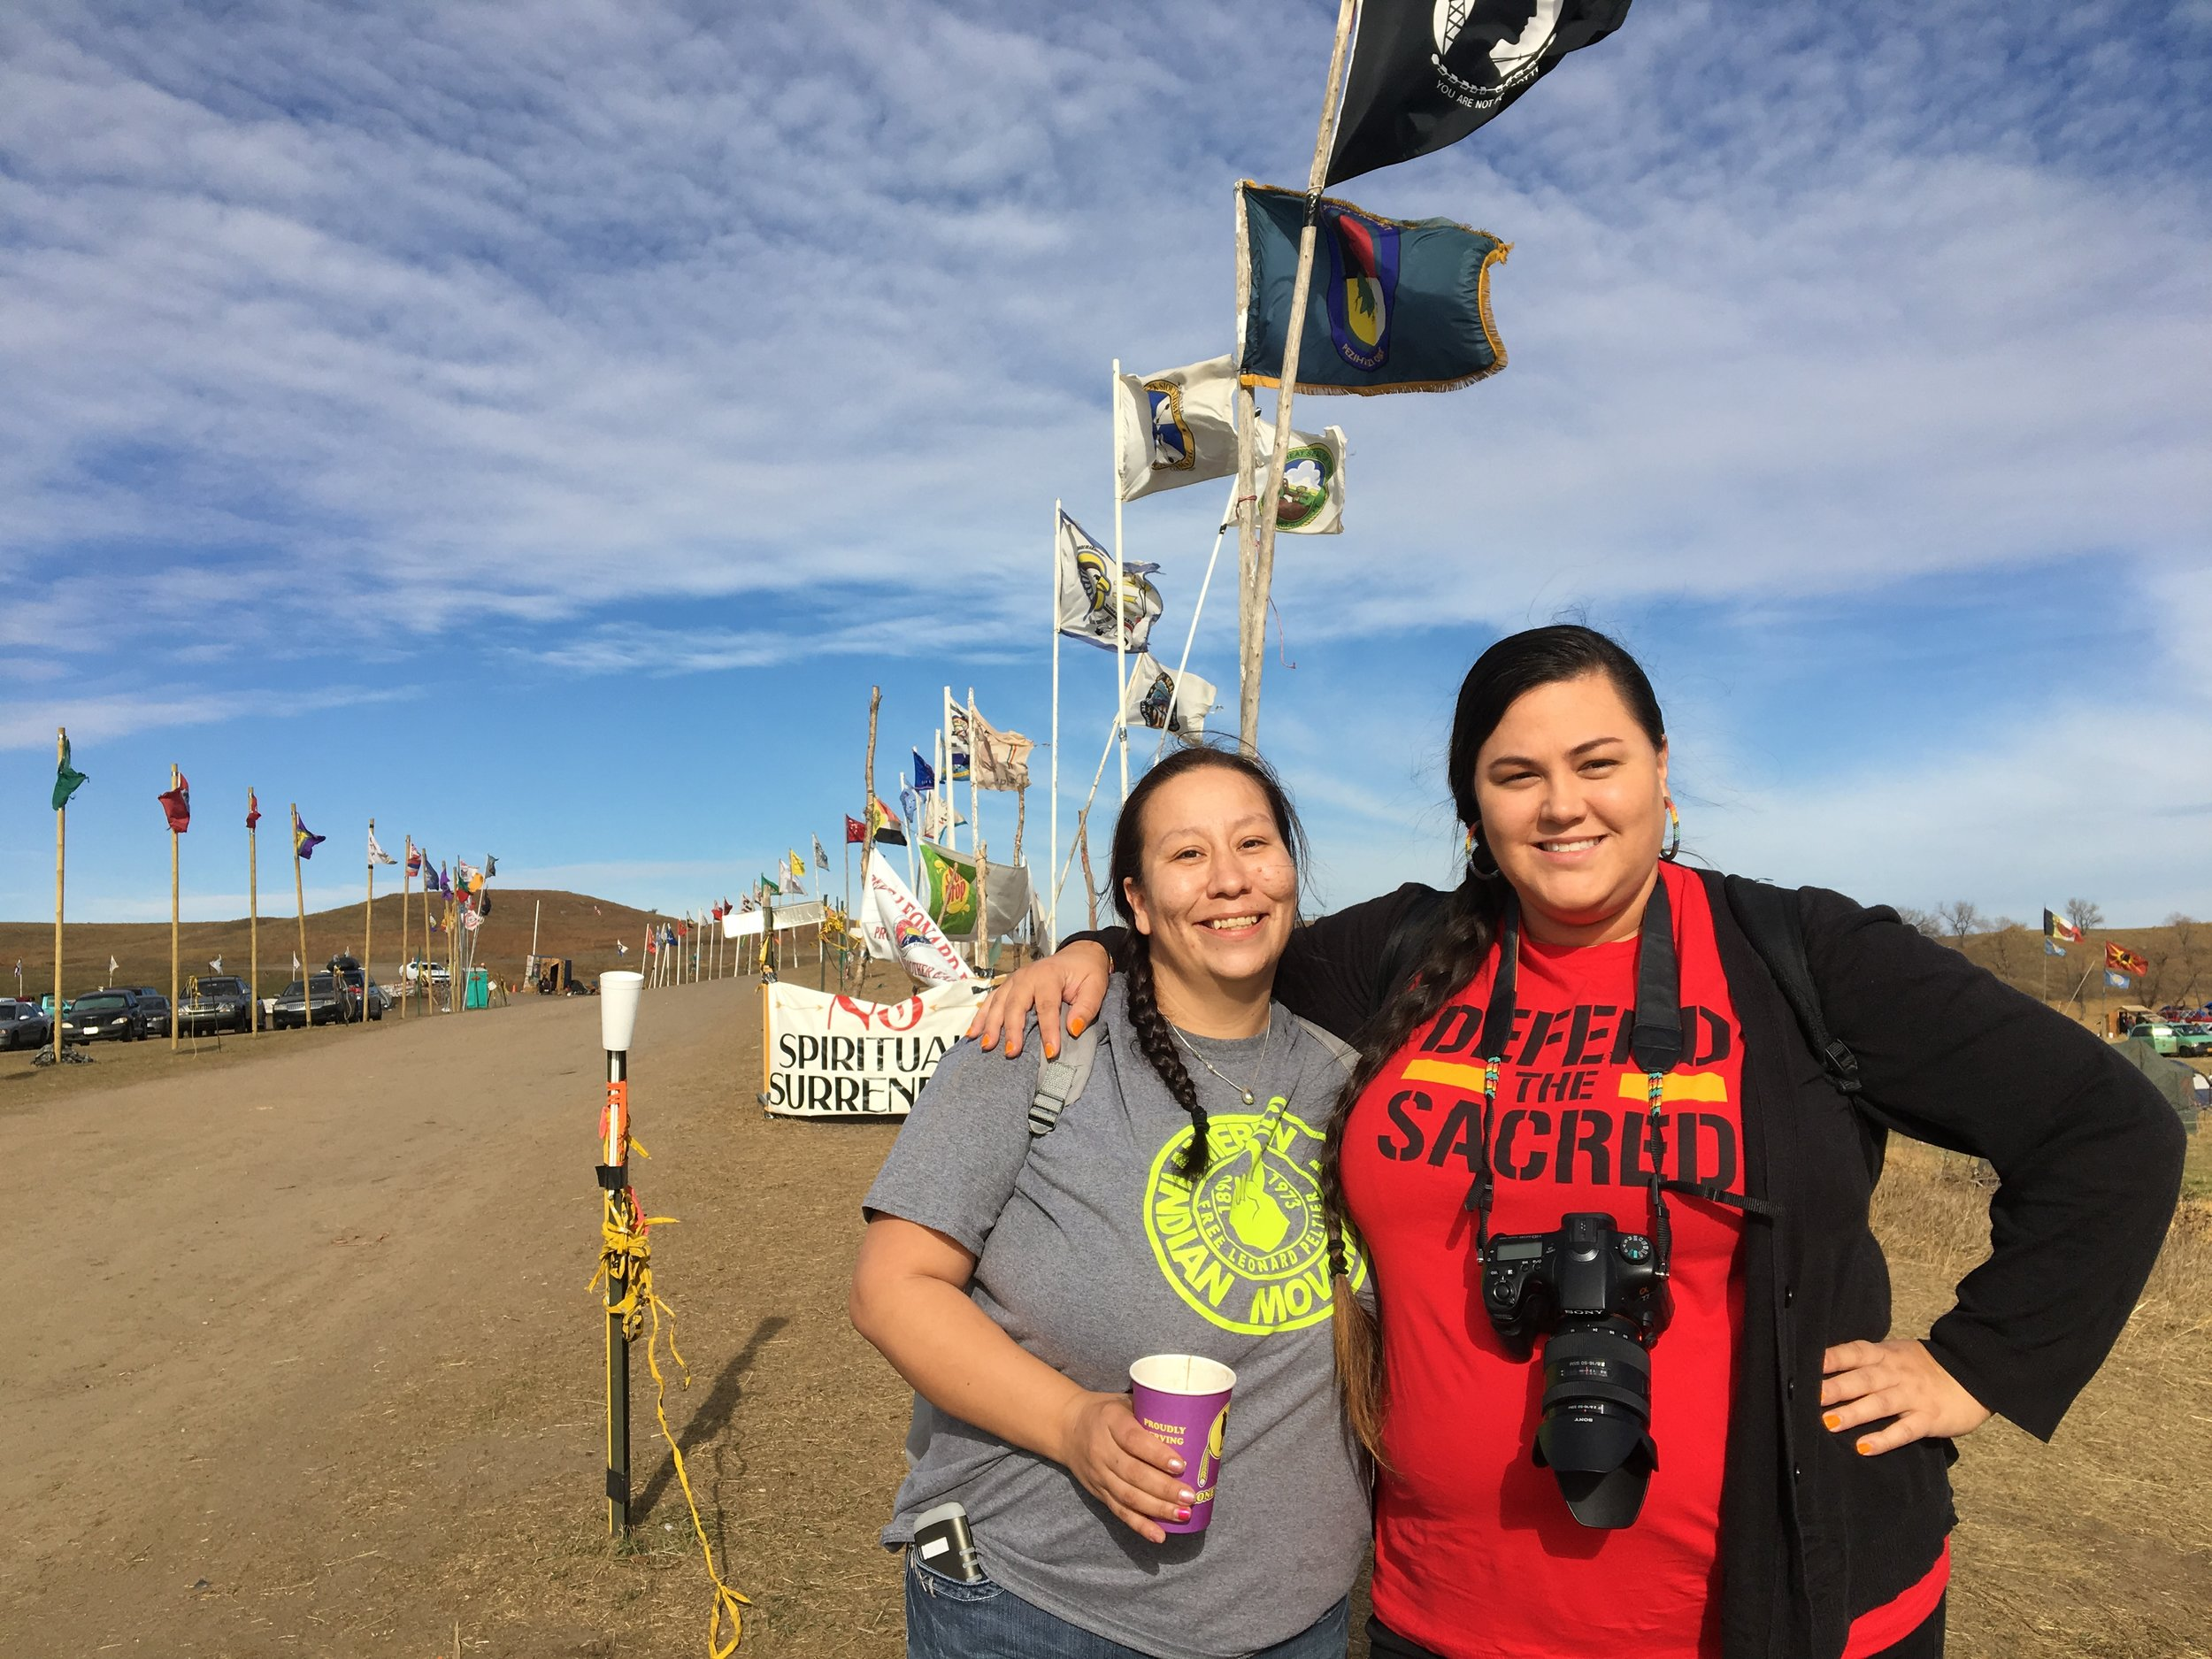 Taté Walker (right) is a writer, speaker, Indigenous rights activist, and editor of Natives Magazine.